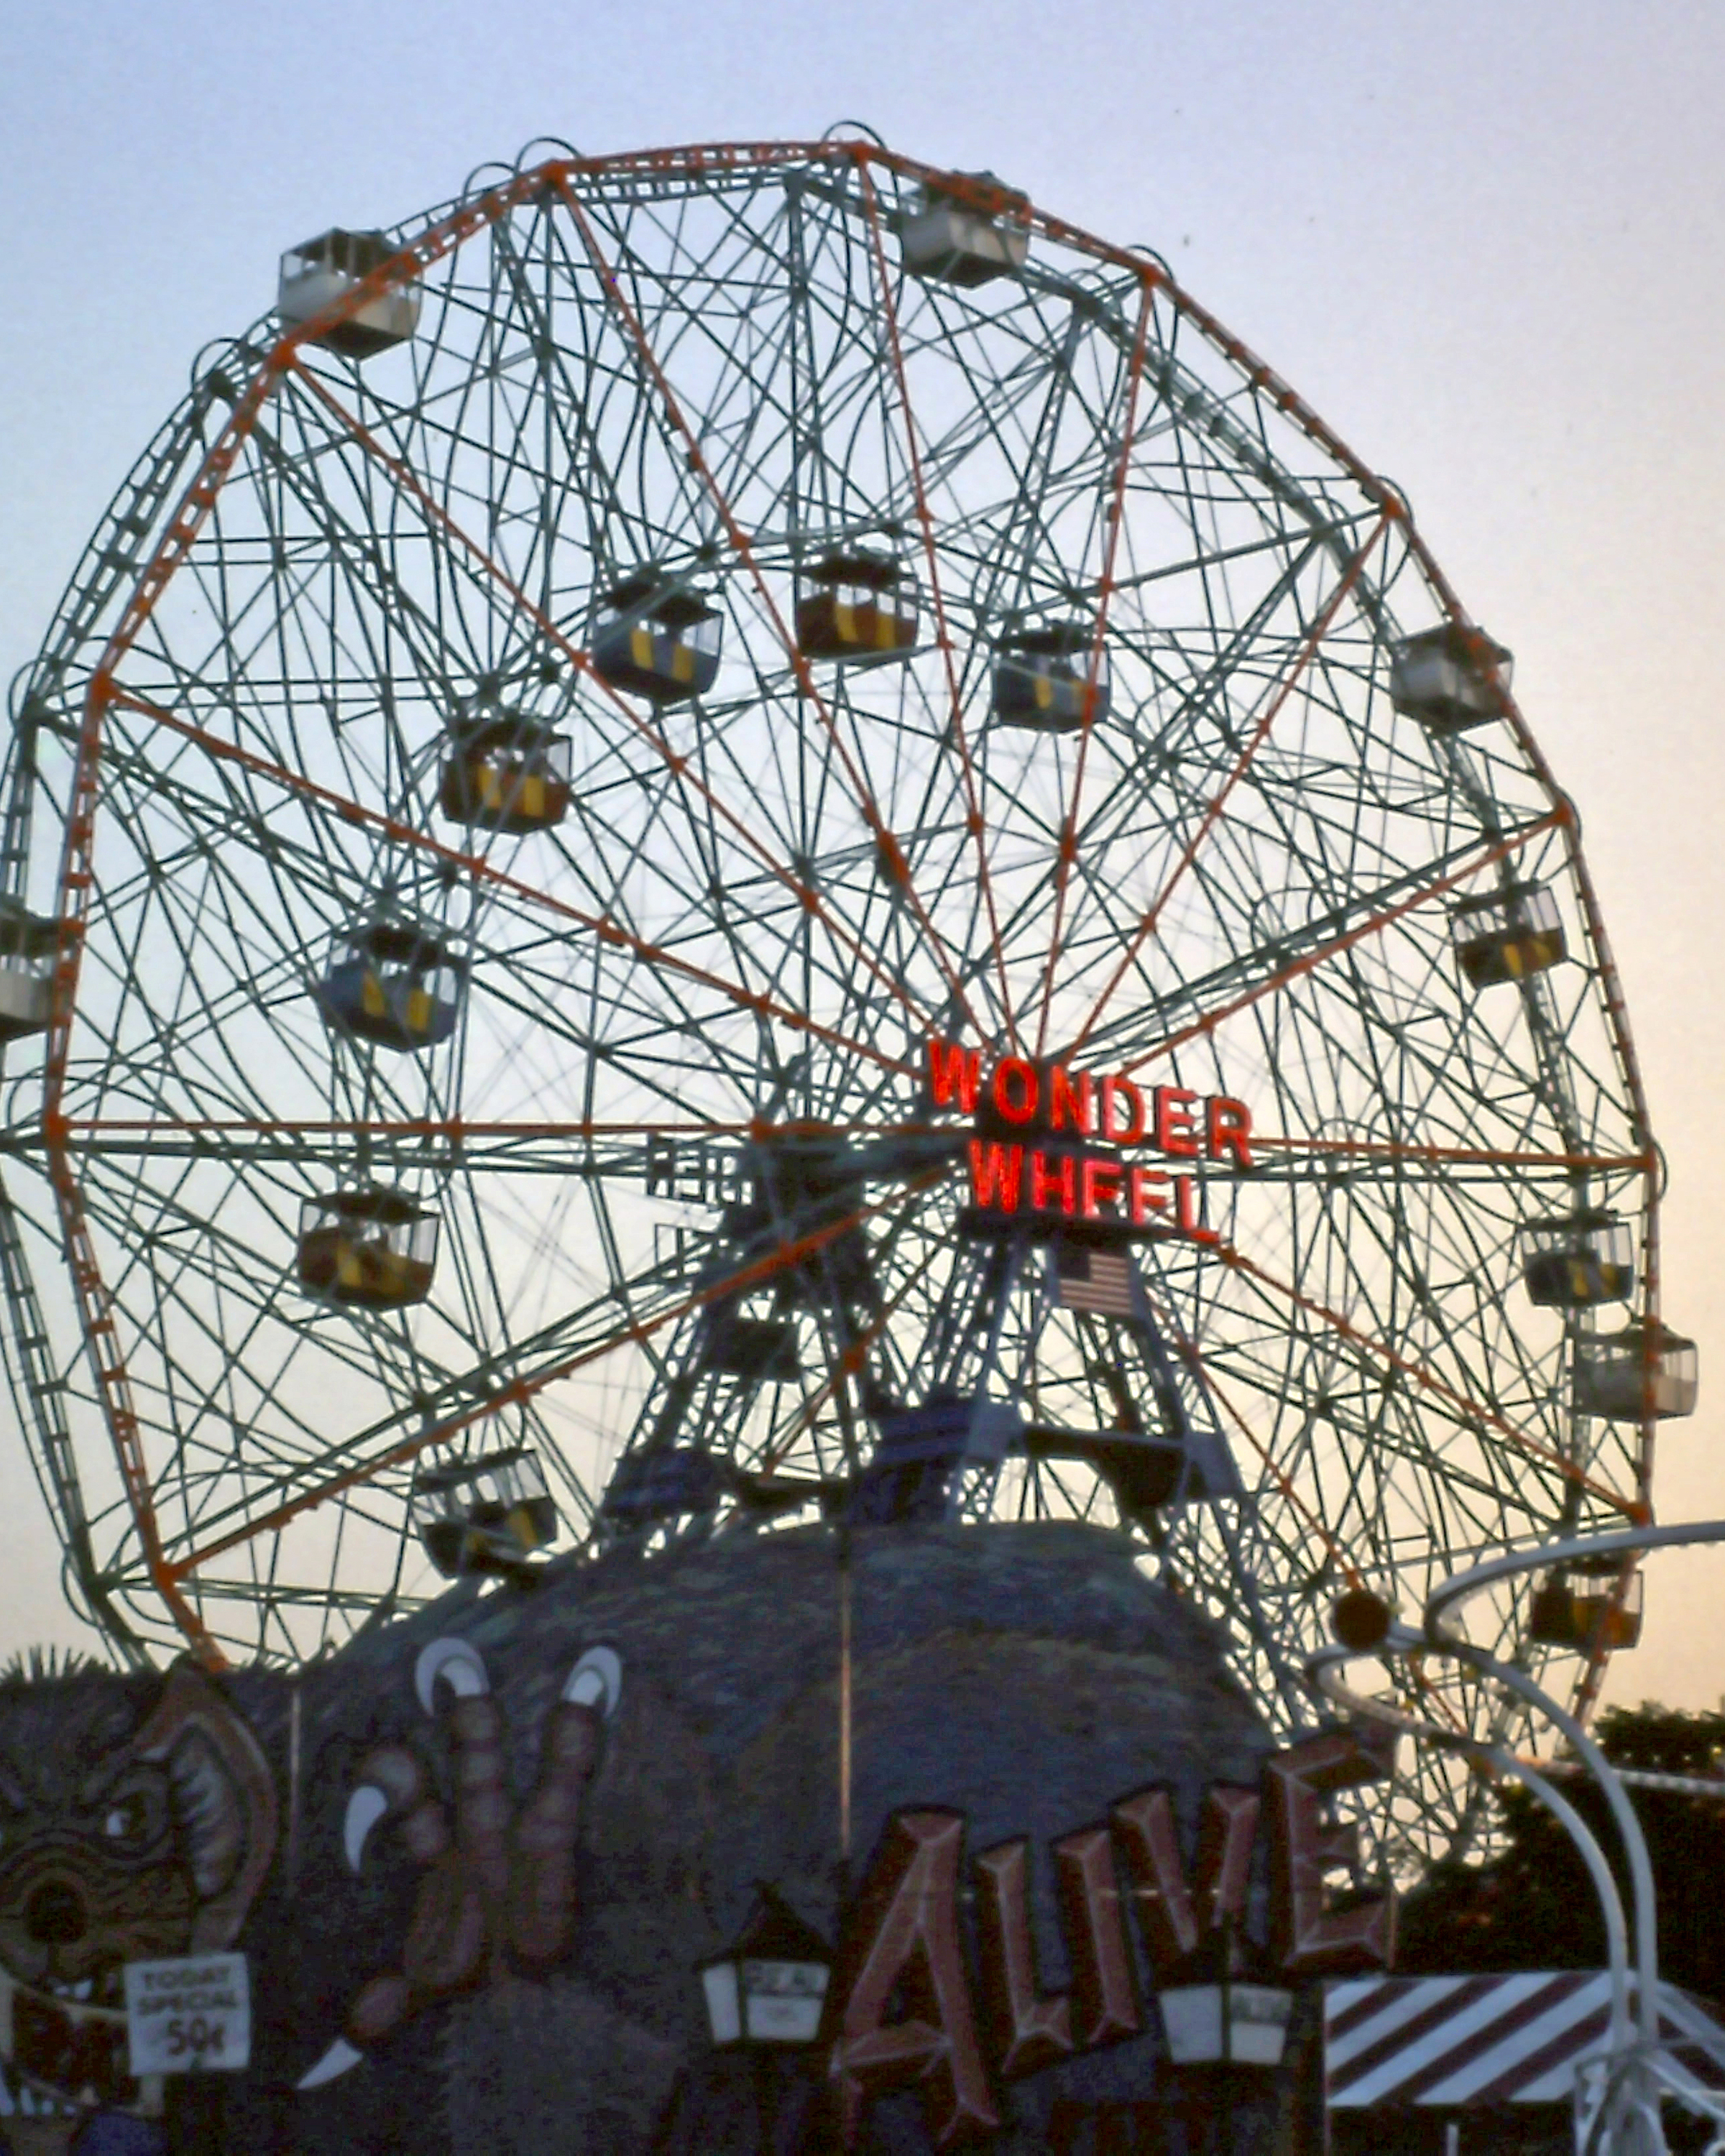 nyc-proposal-spot-coney-island-1114.jpg